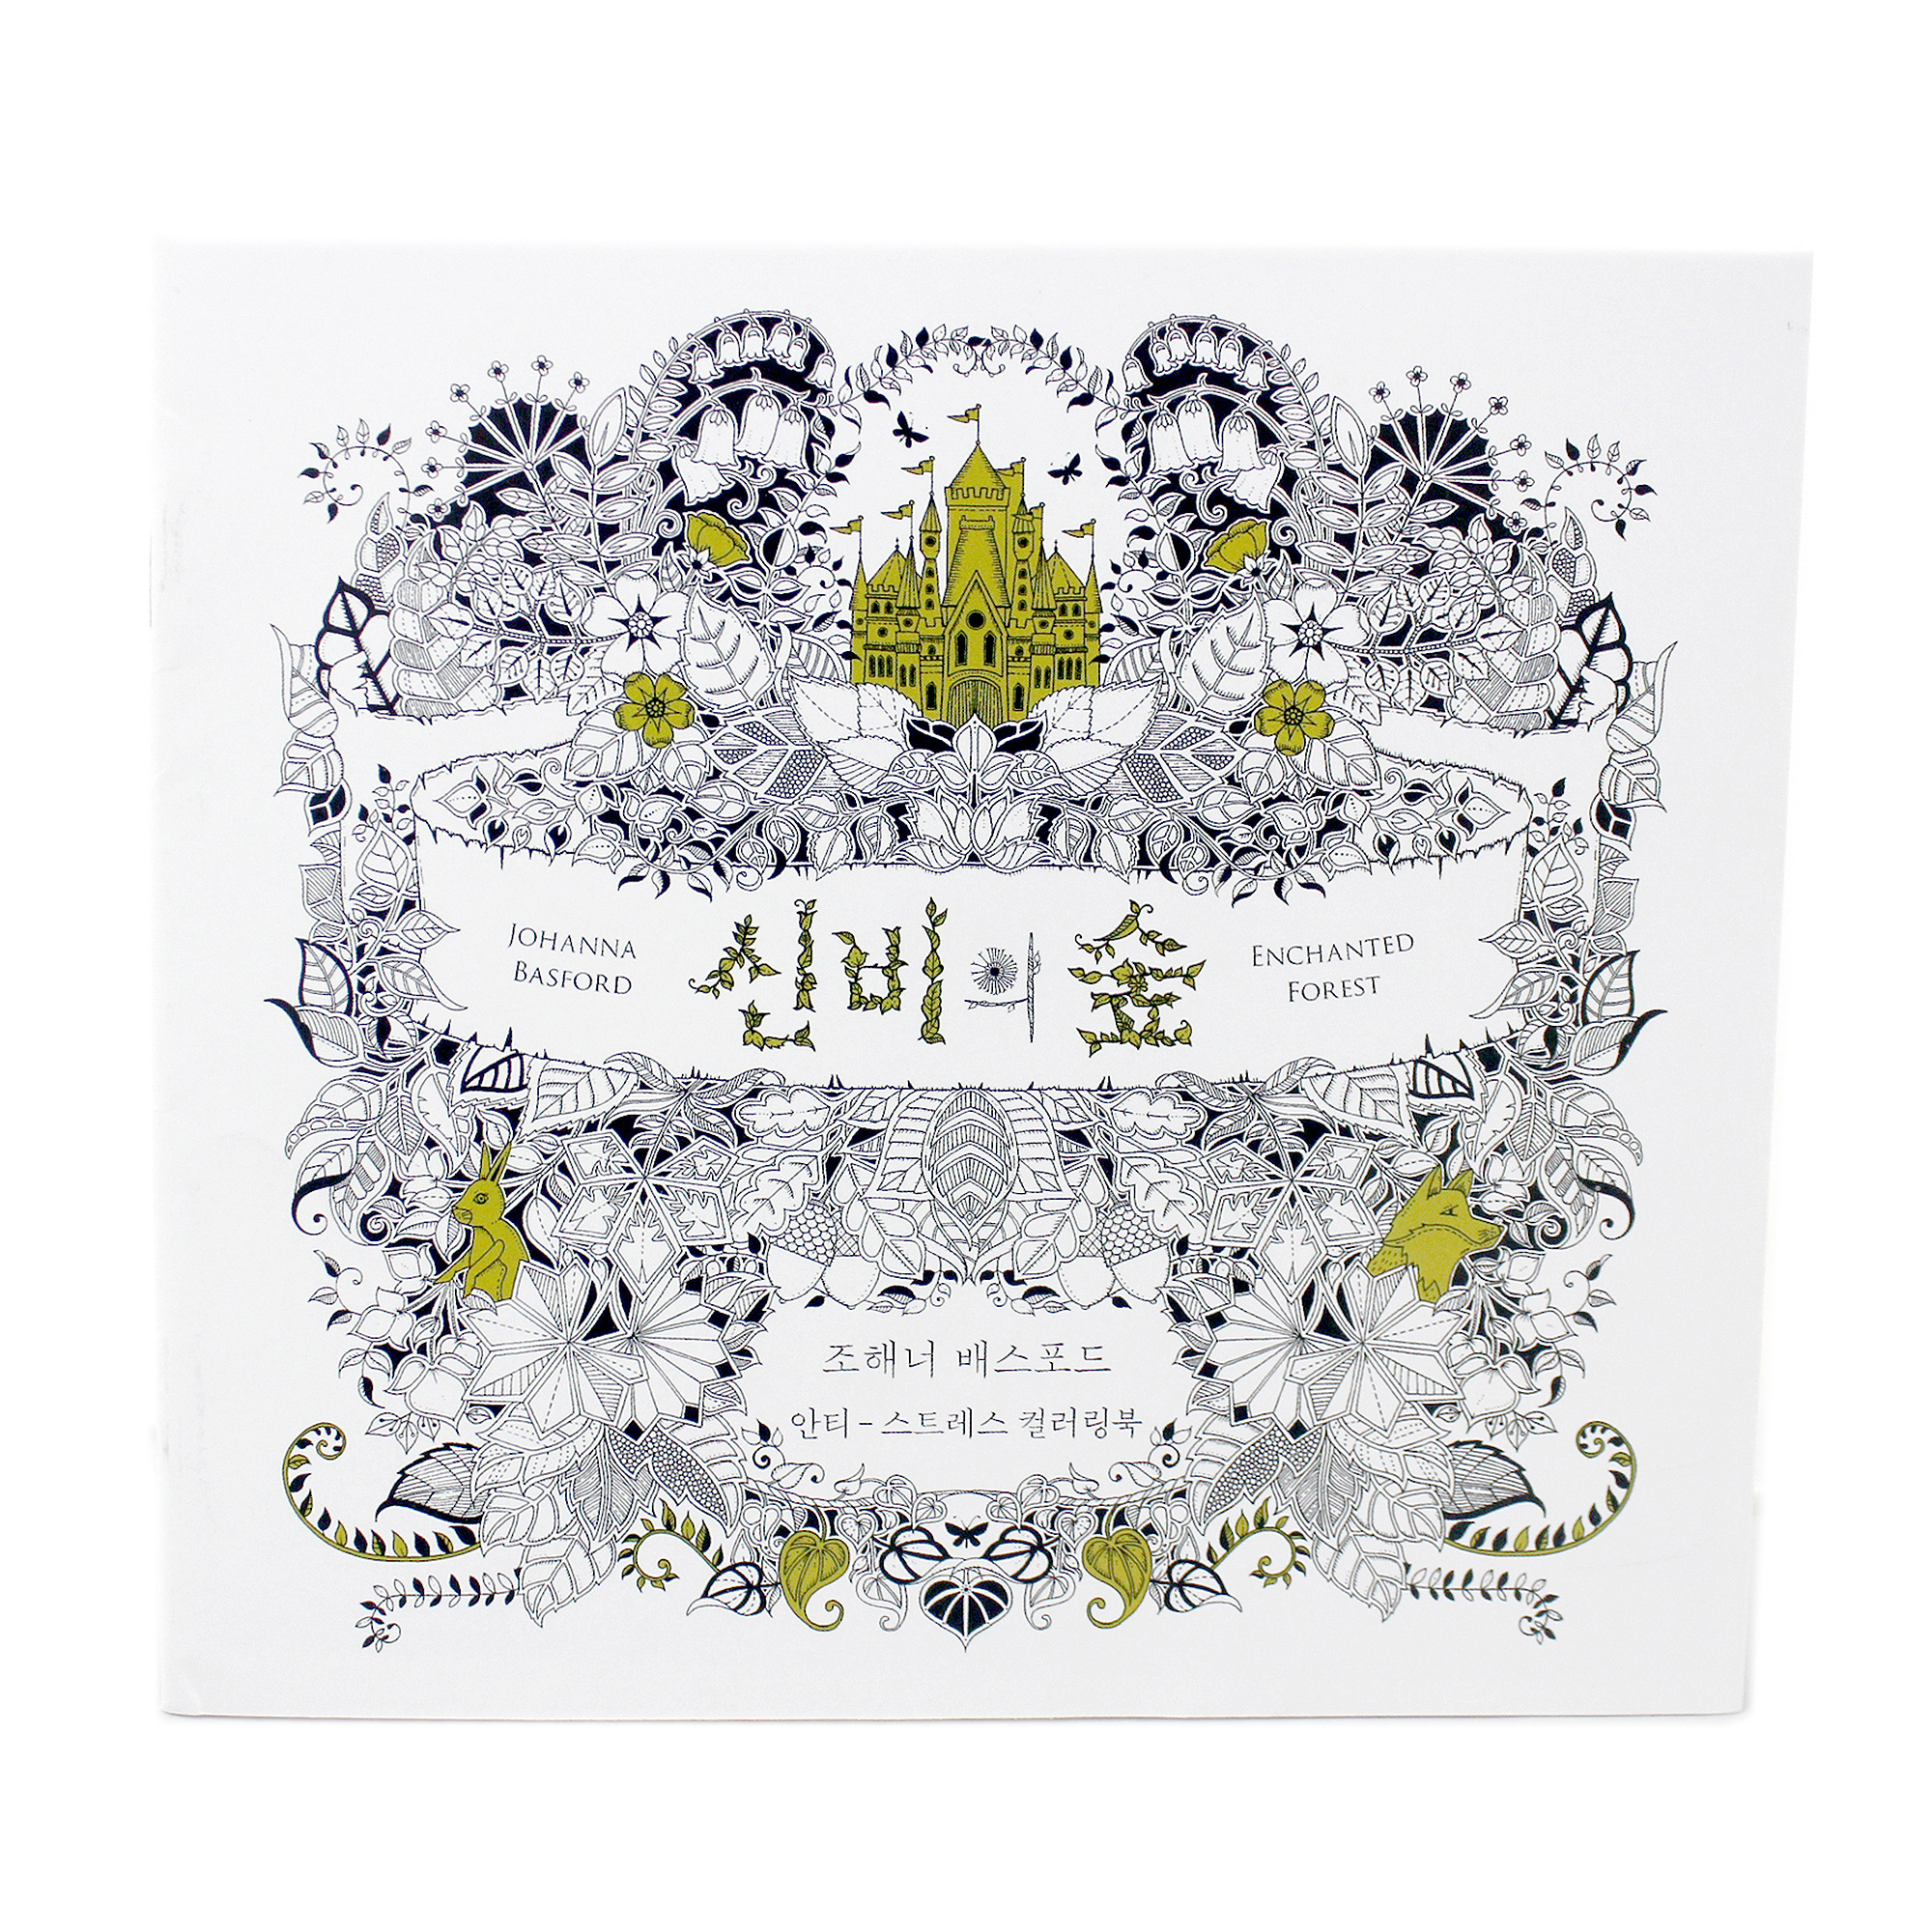 Secret Garden - Enchanted Forest Colouring Book (24 Pages)